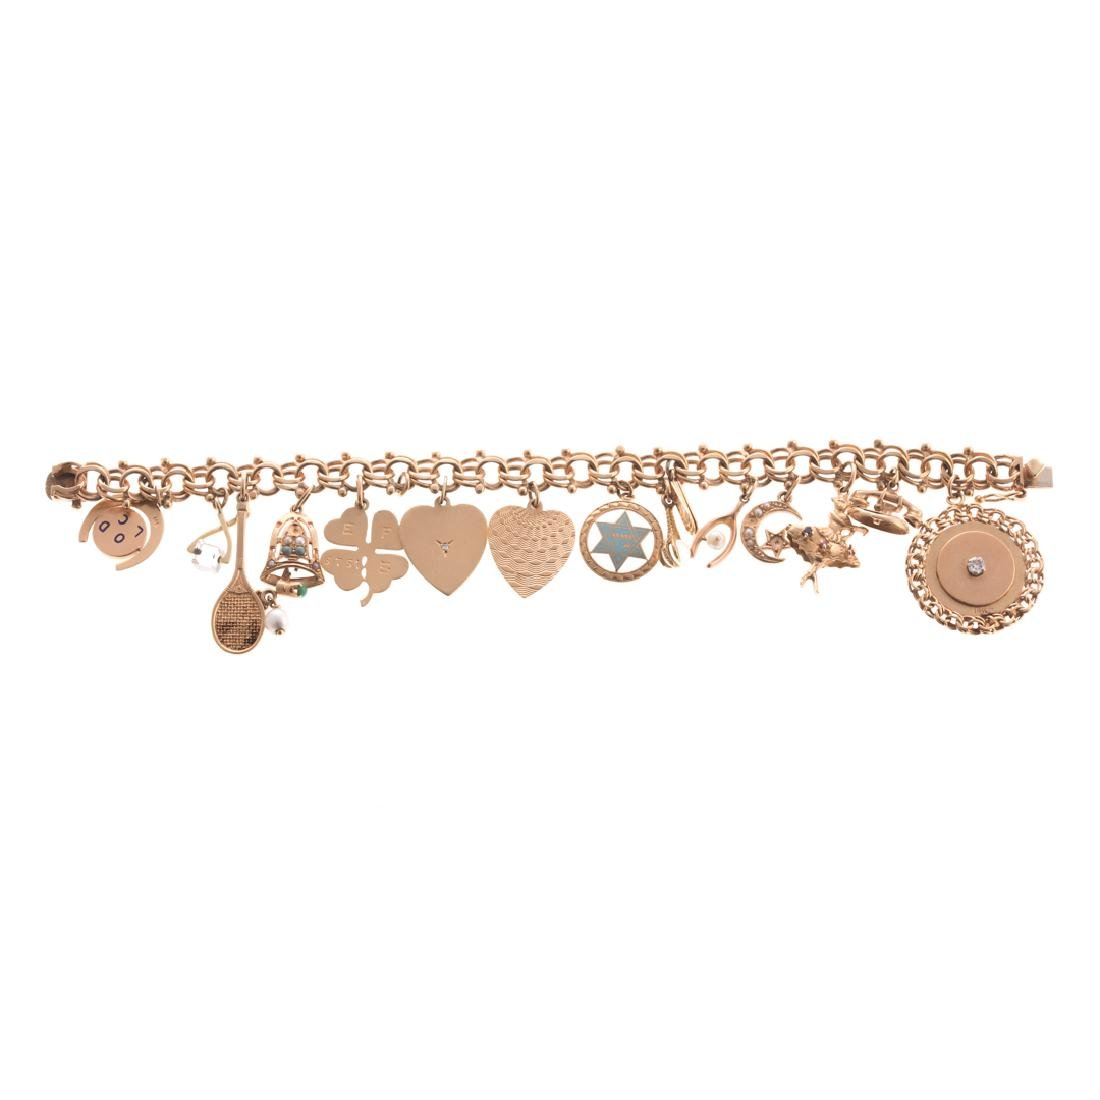 A Lady's Gold Link Bracelet with 15 Charms